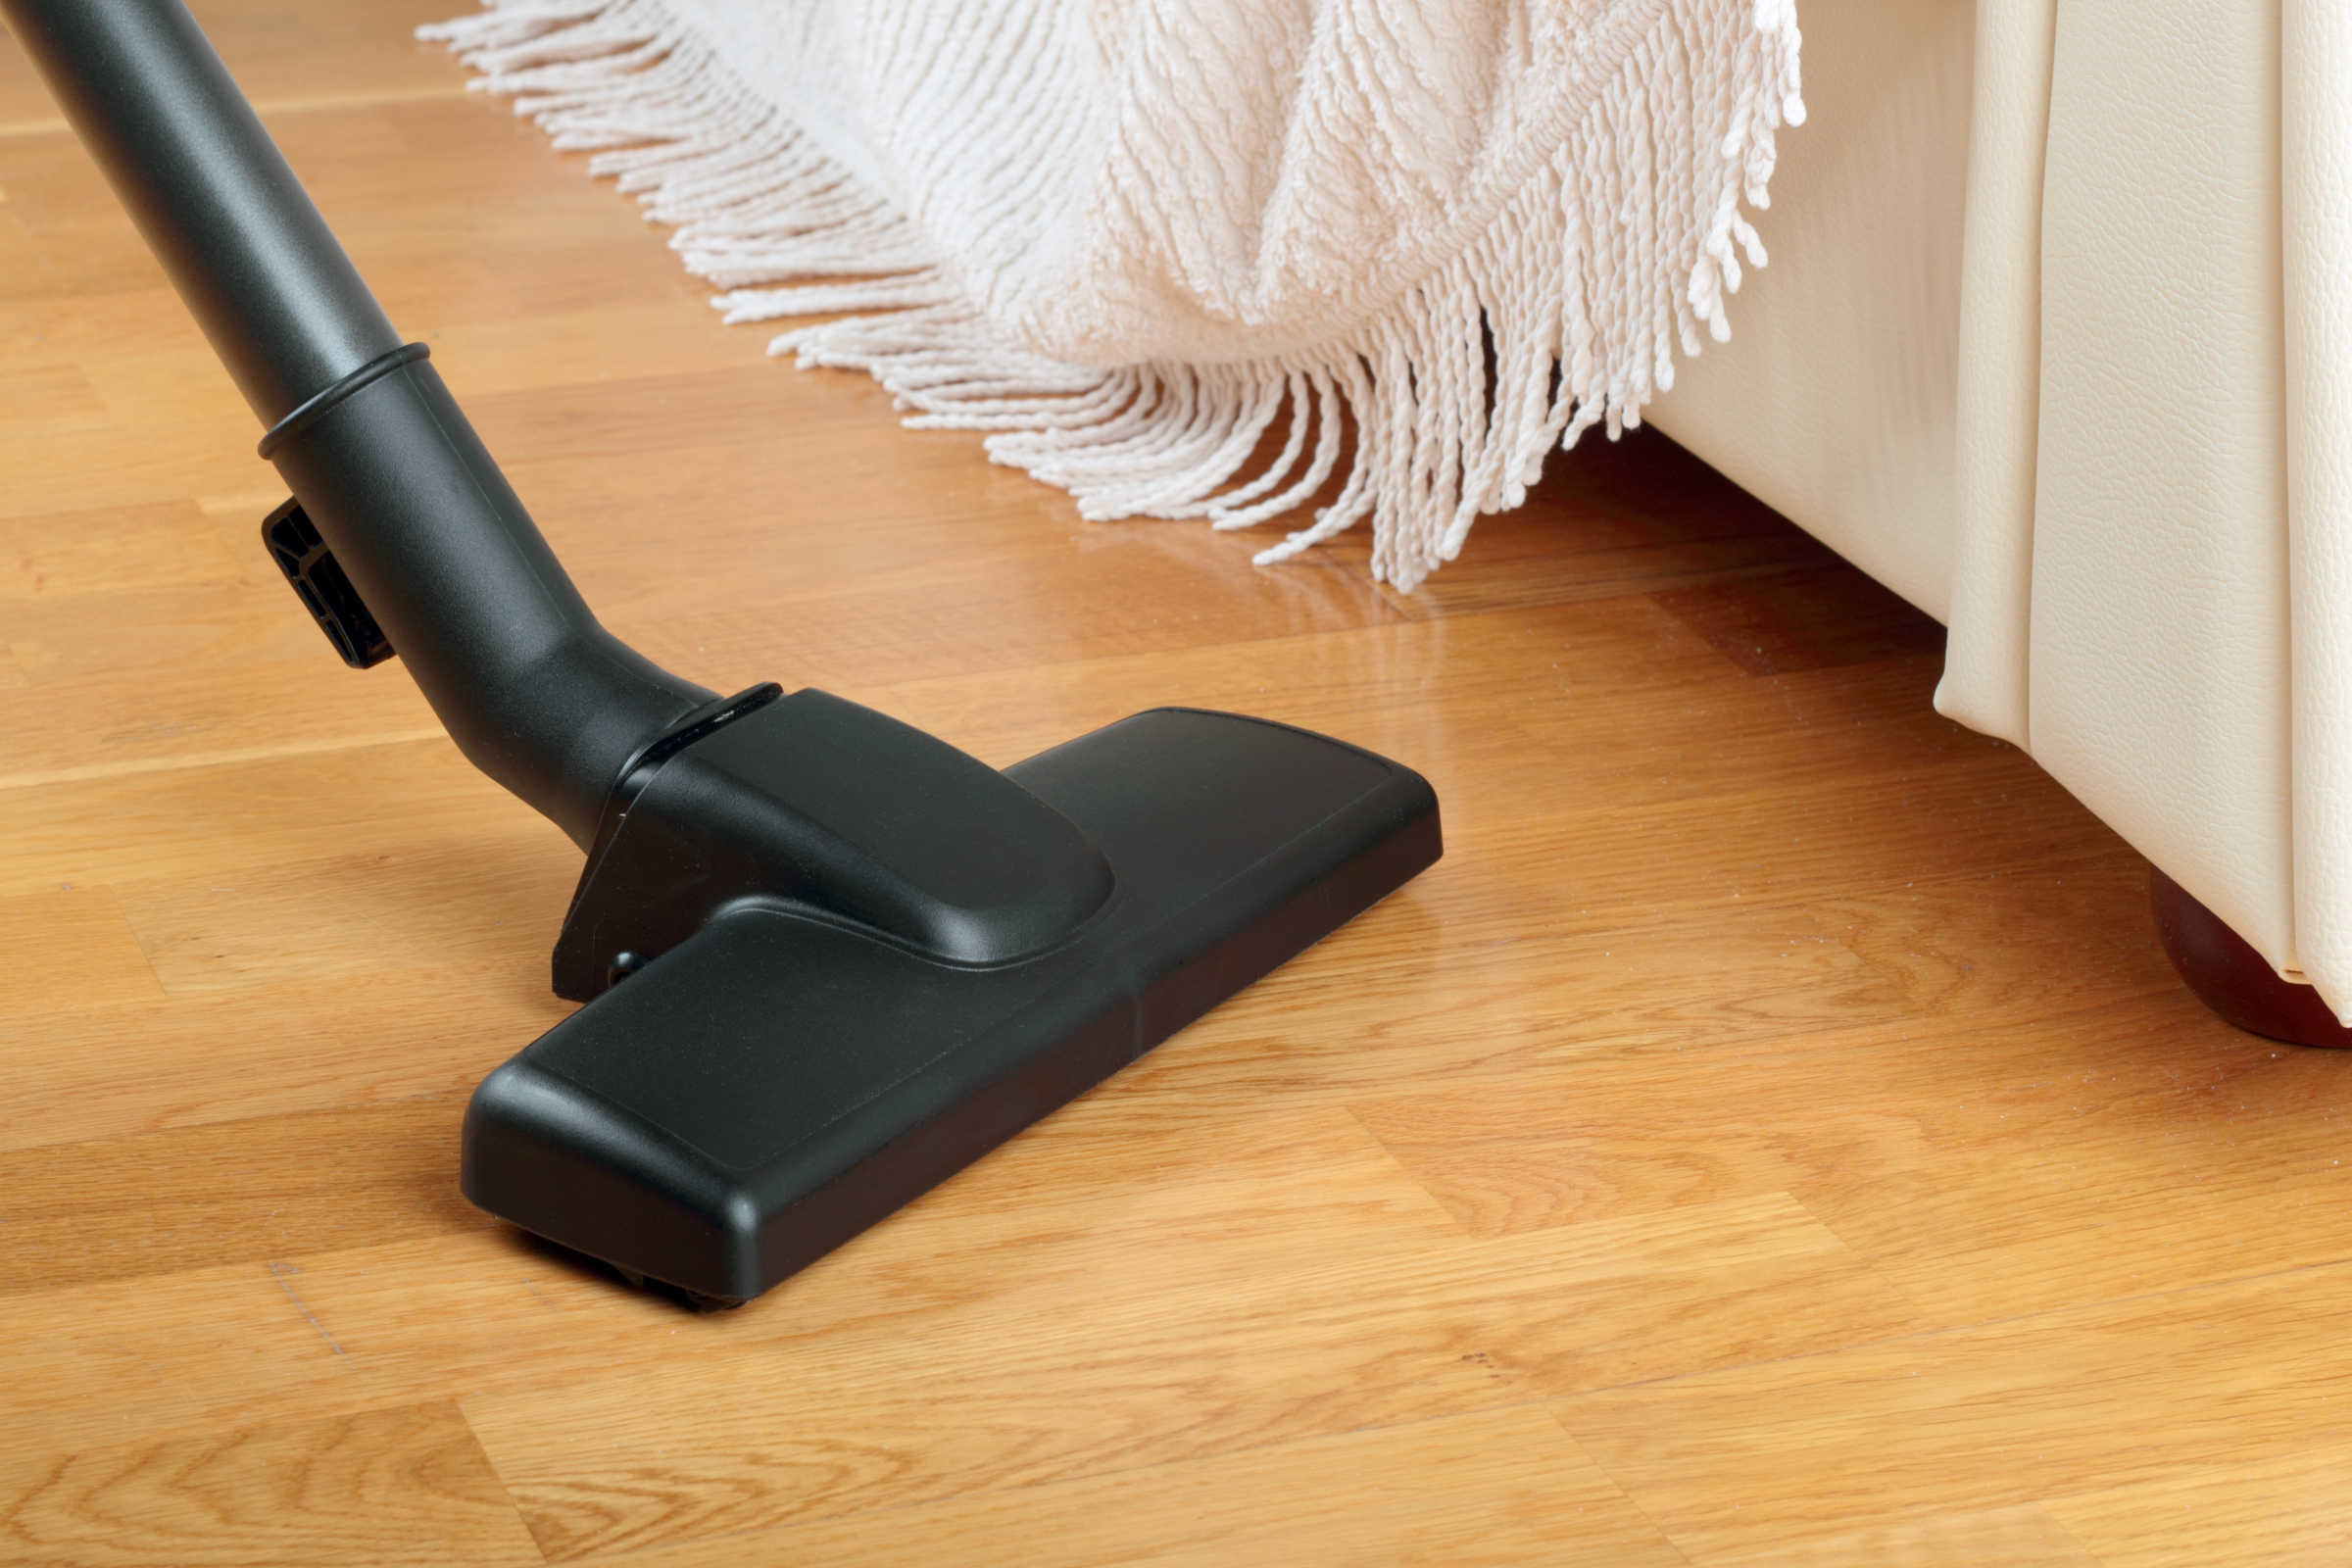 Home Allergens Vacuum by ATN Mechanical Systems